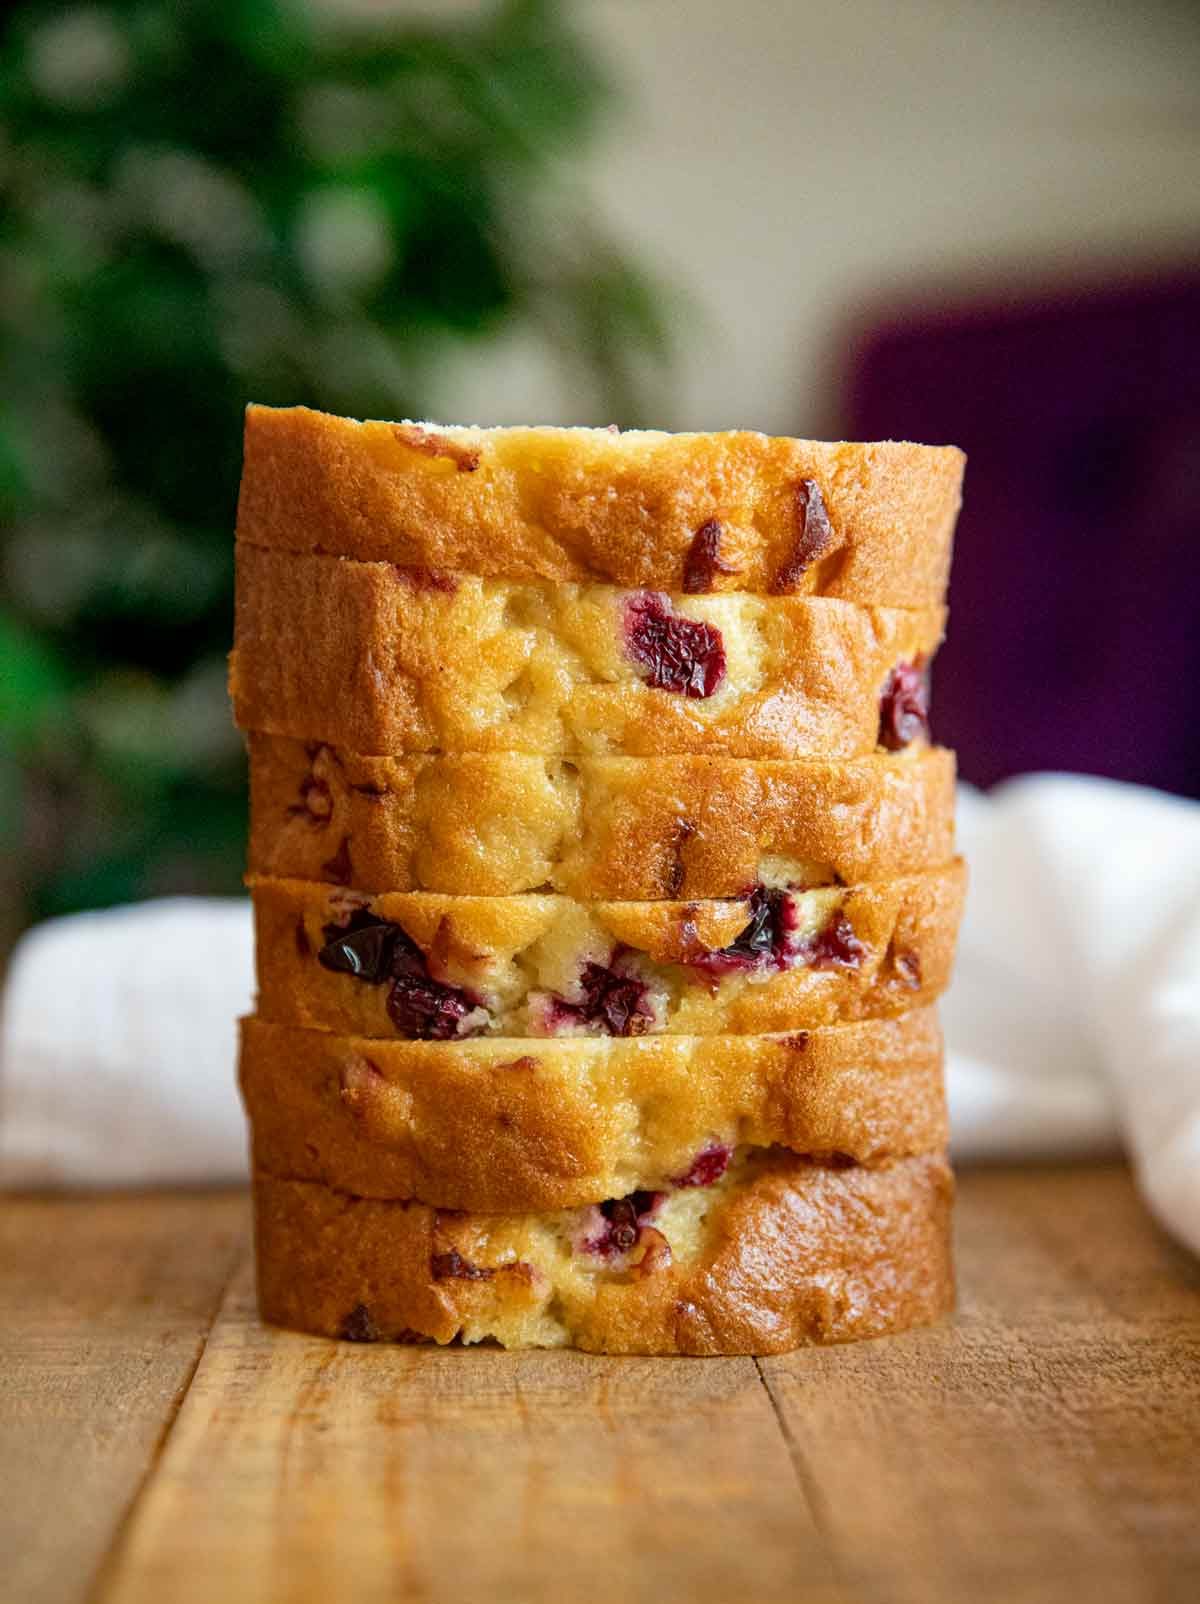 Stack of cranberry bread slices on wooden table